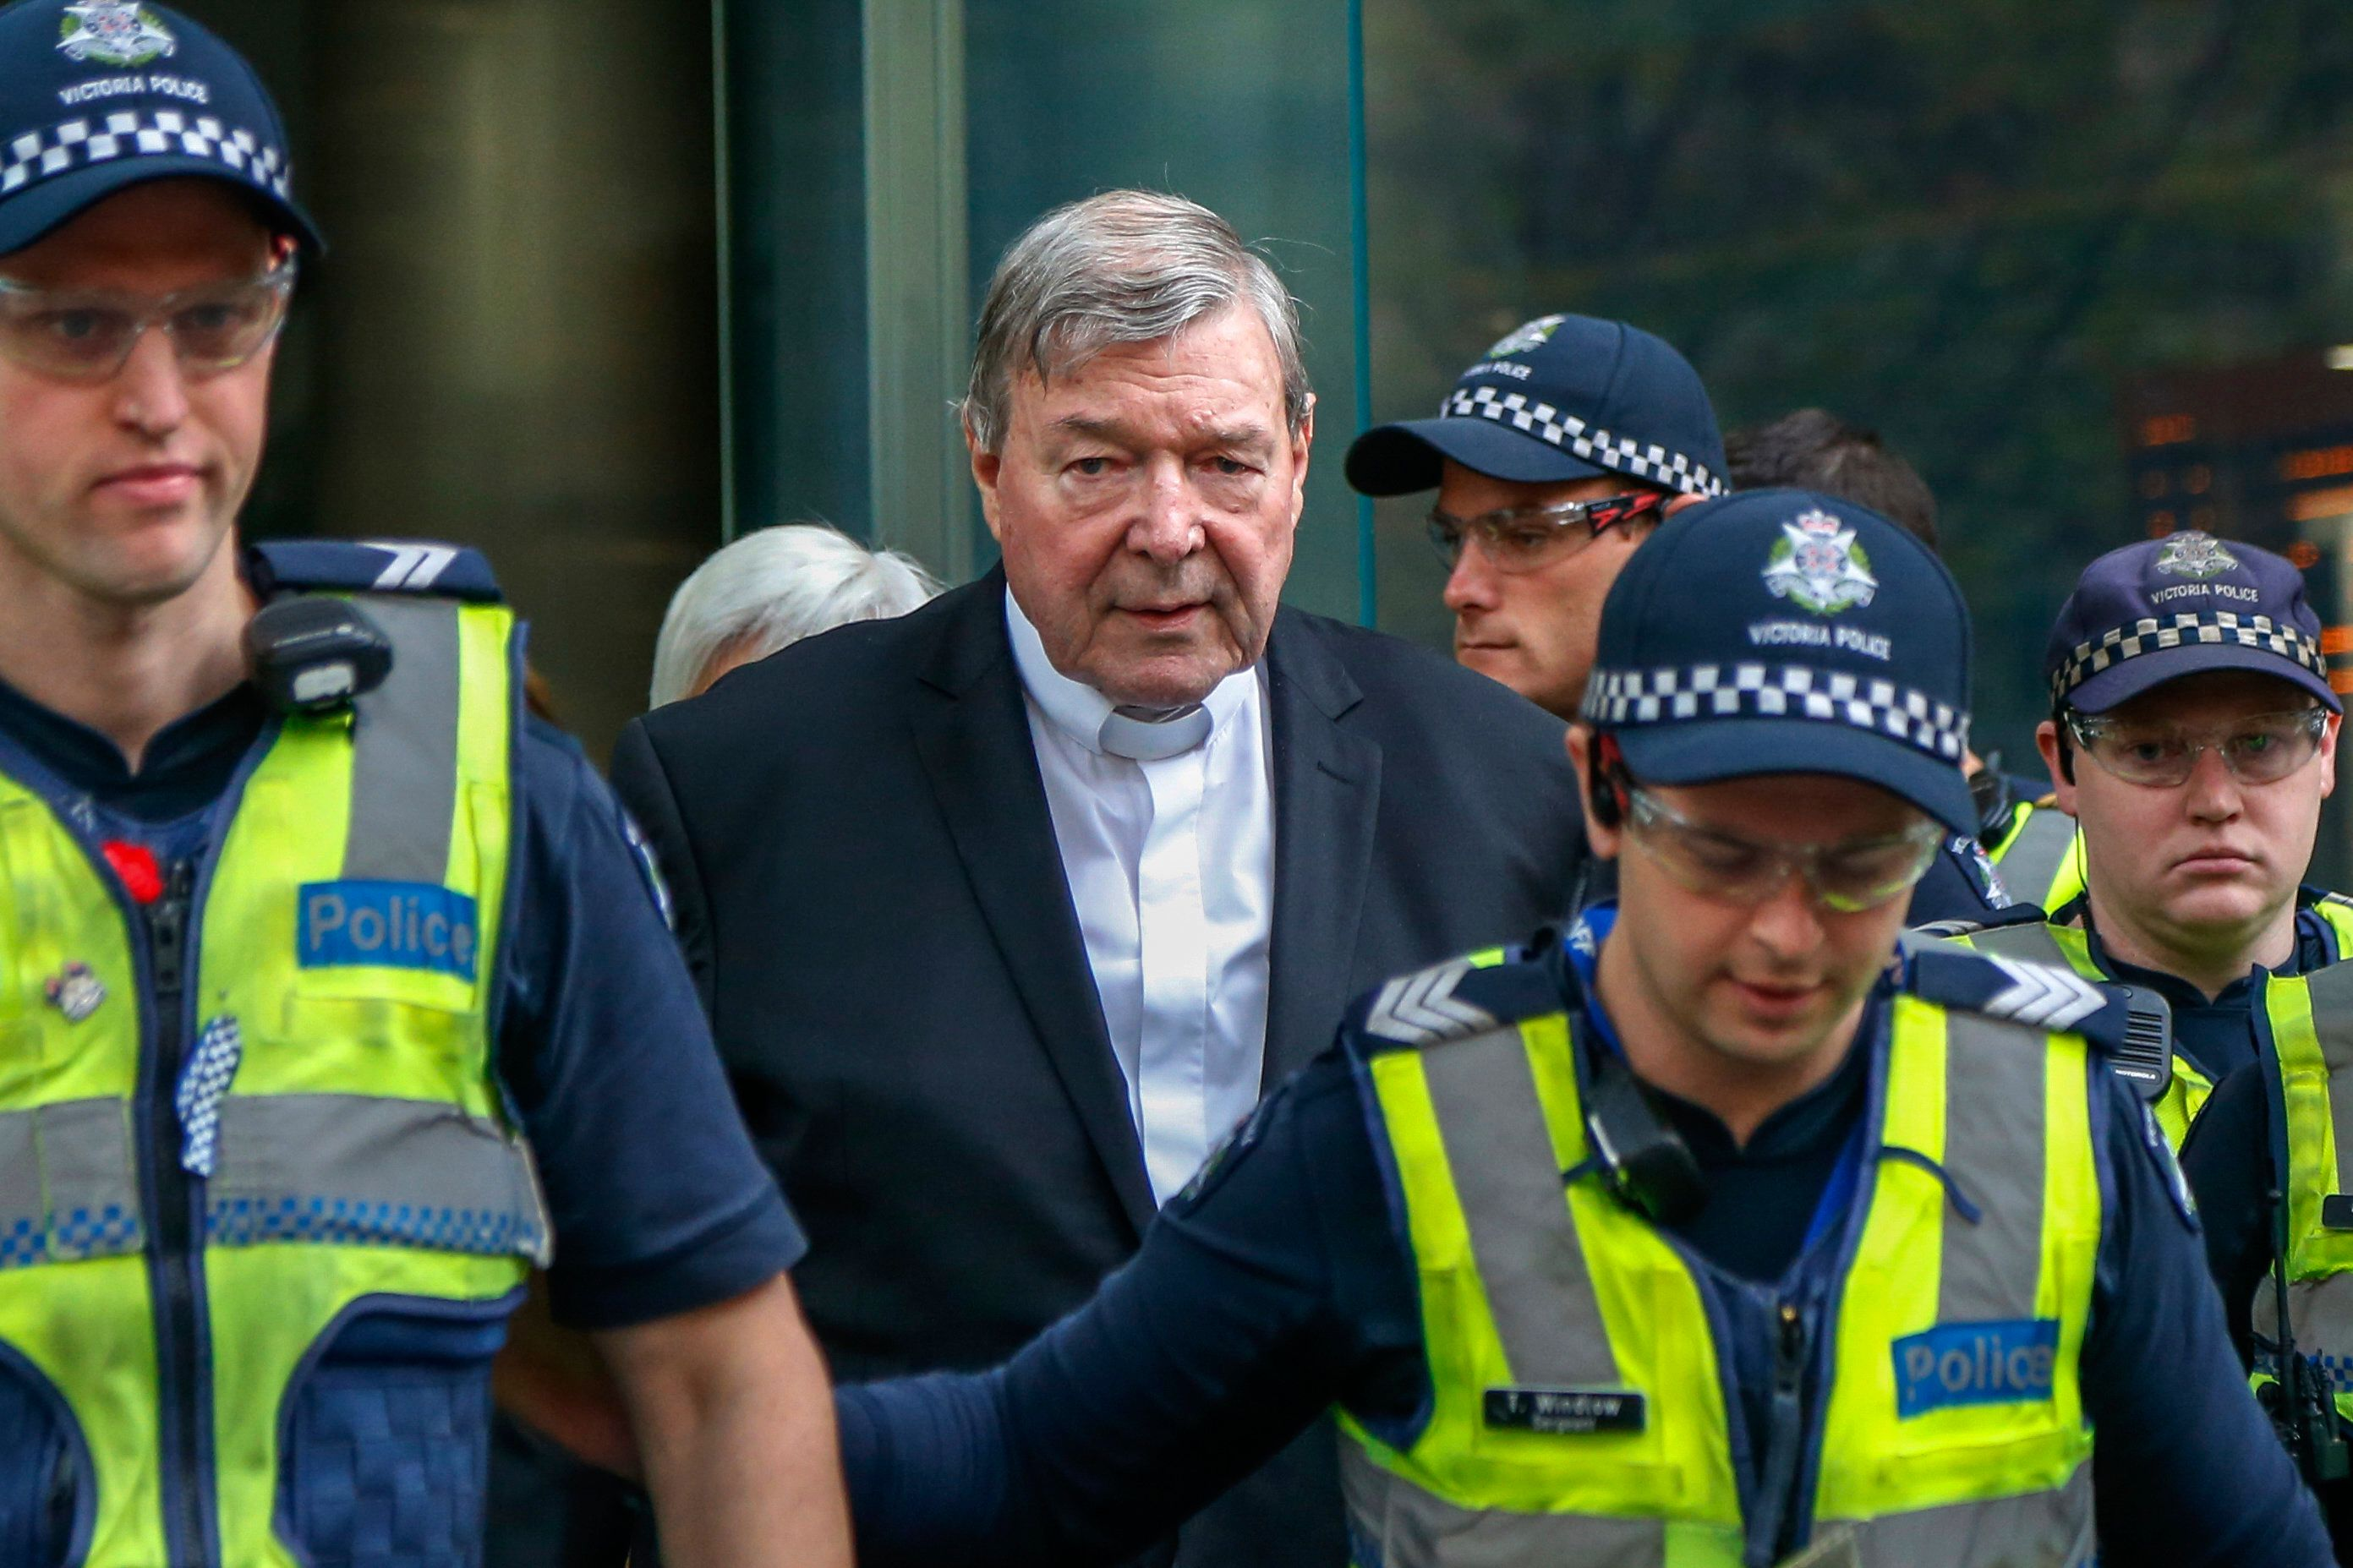 Cardinal George Pell, the most senior Catholic cleric to face sex charges, leaves court in Melbourne, Australia, Wednesday, May 2, 2018. Pell, the most senior Vatican official to be charged in the Catholic Church sex abuse crisis, arrived Wednesday for an appearance in the Melbourne court where he will eventually stand trial on sexual abuse charges spanning decades. (AP Photo/Asanka Brendon Ratnayake)